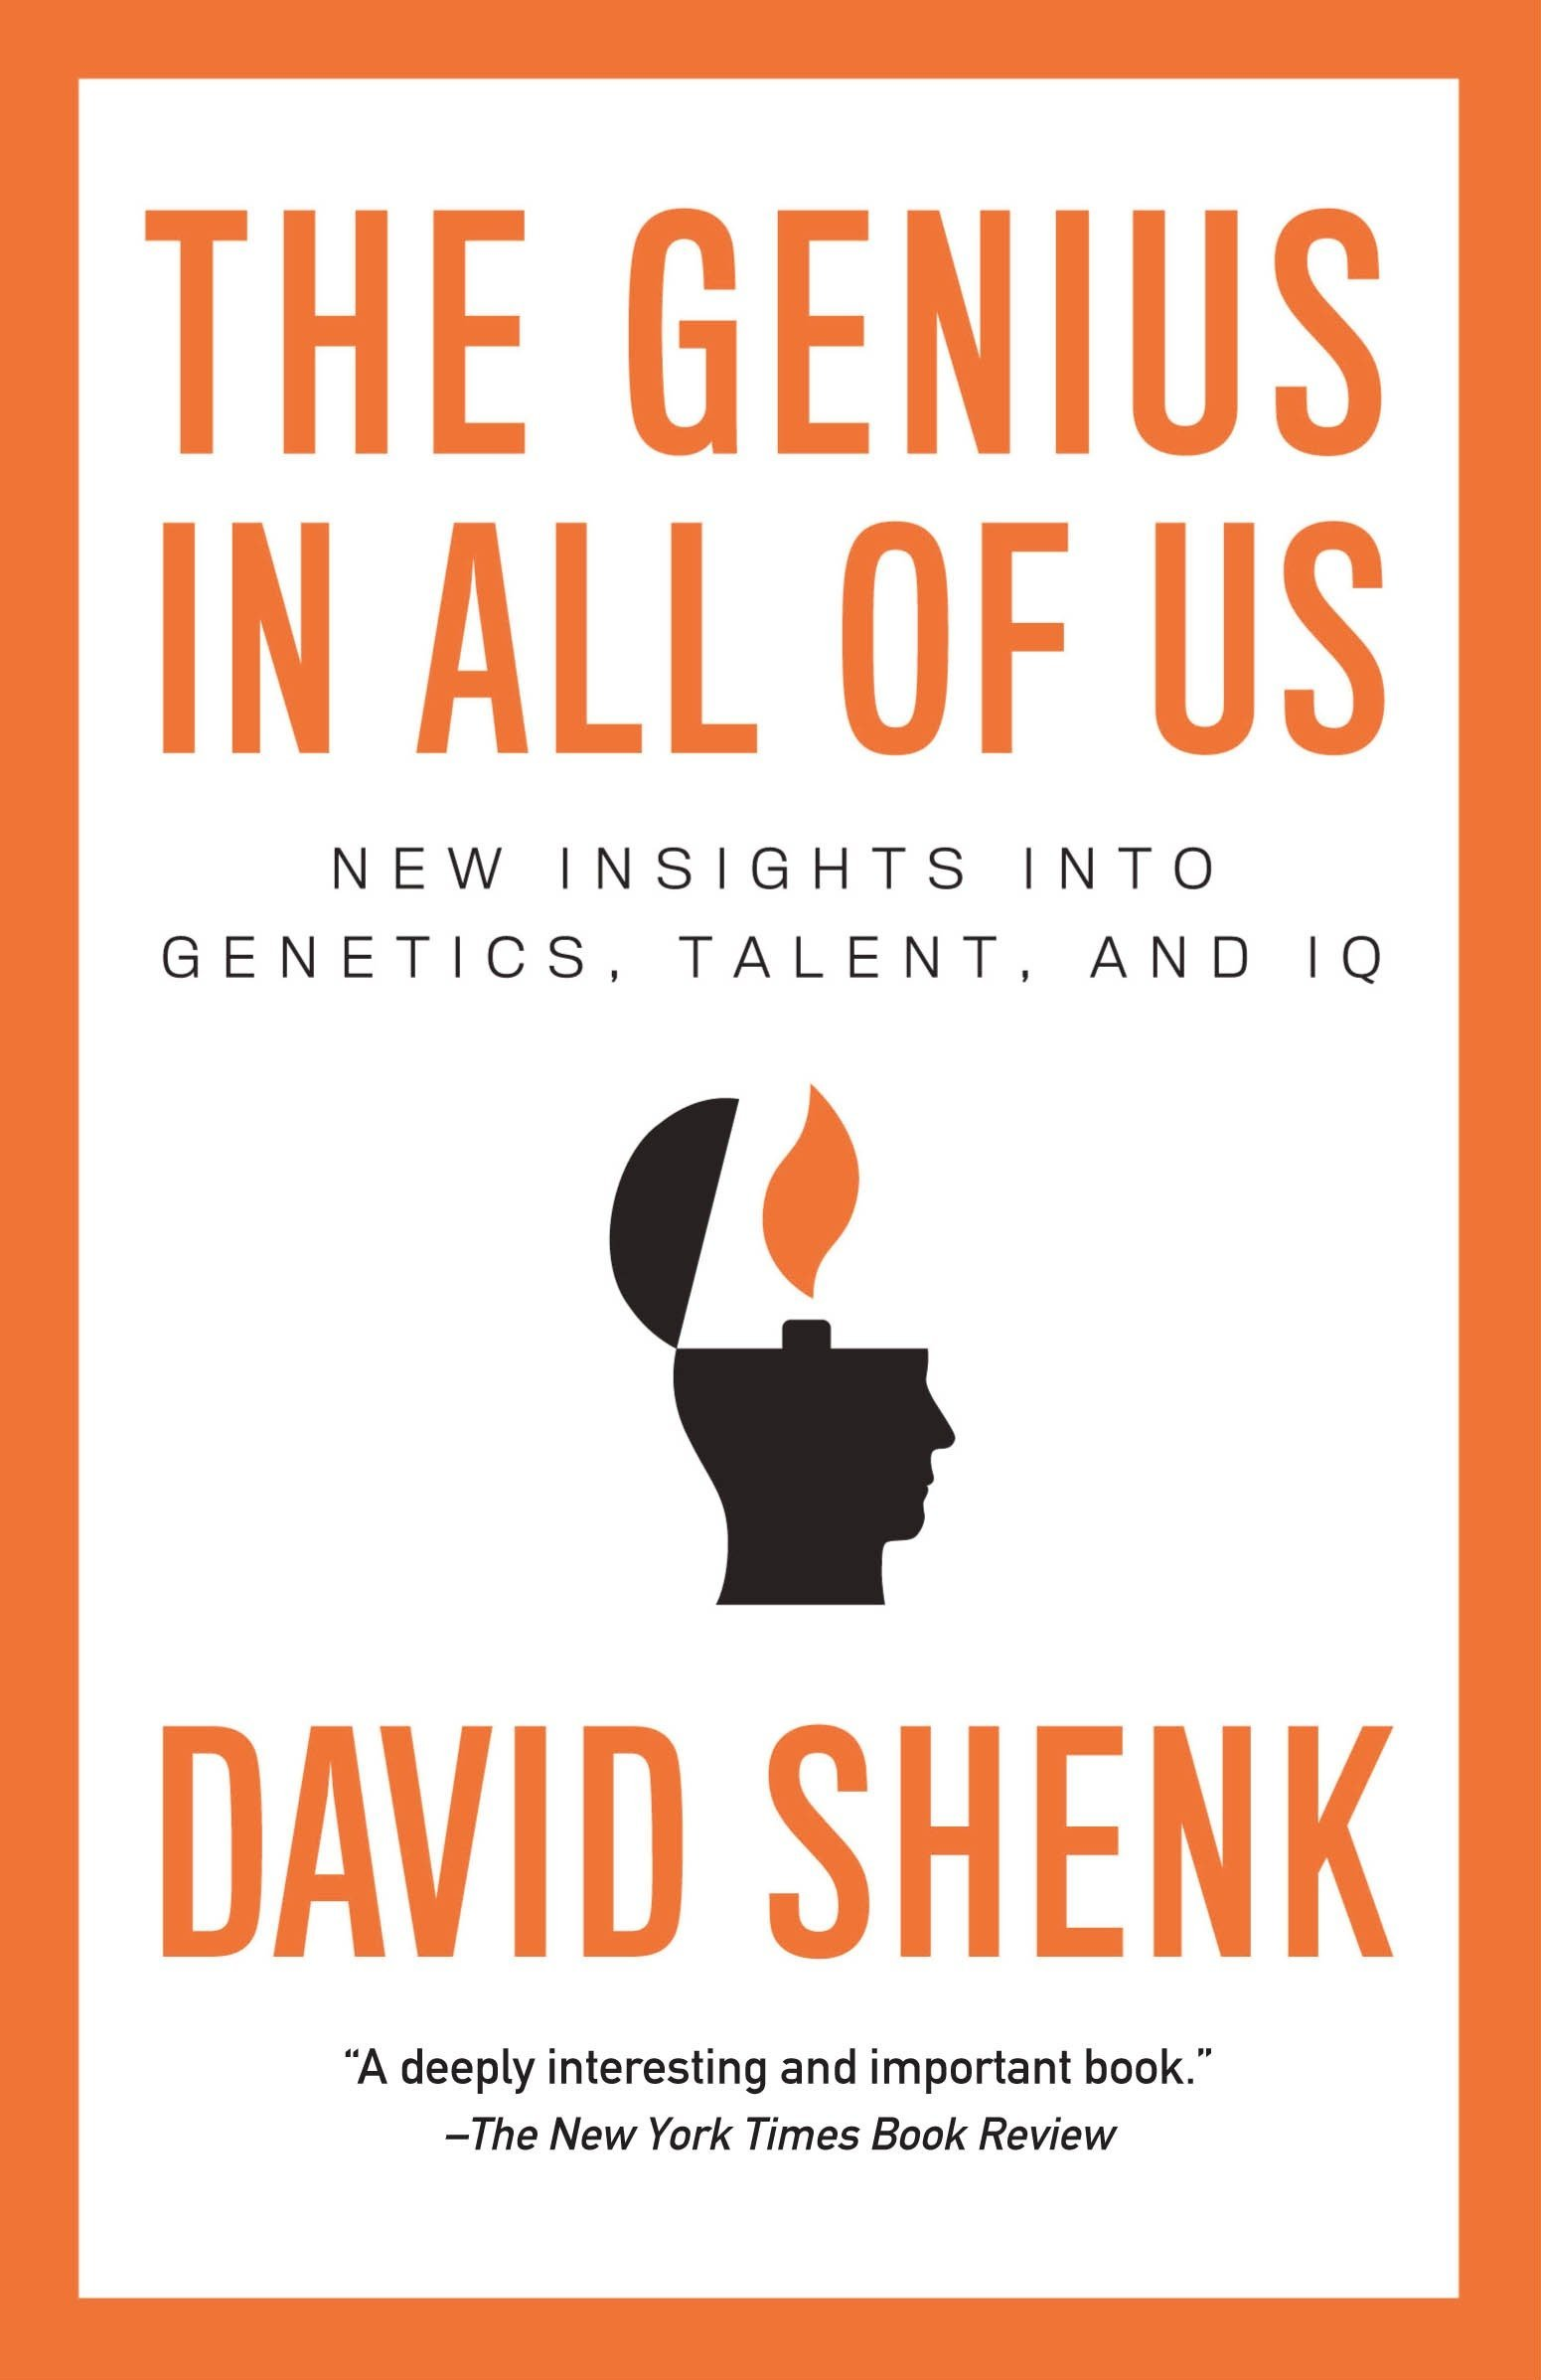 The genius in all of us new insights into genetics talent and iq the genius in all of us new insights into genetics talent and iq david shenk 9780307387301 amazon books malvernweather Image collections